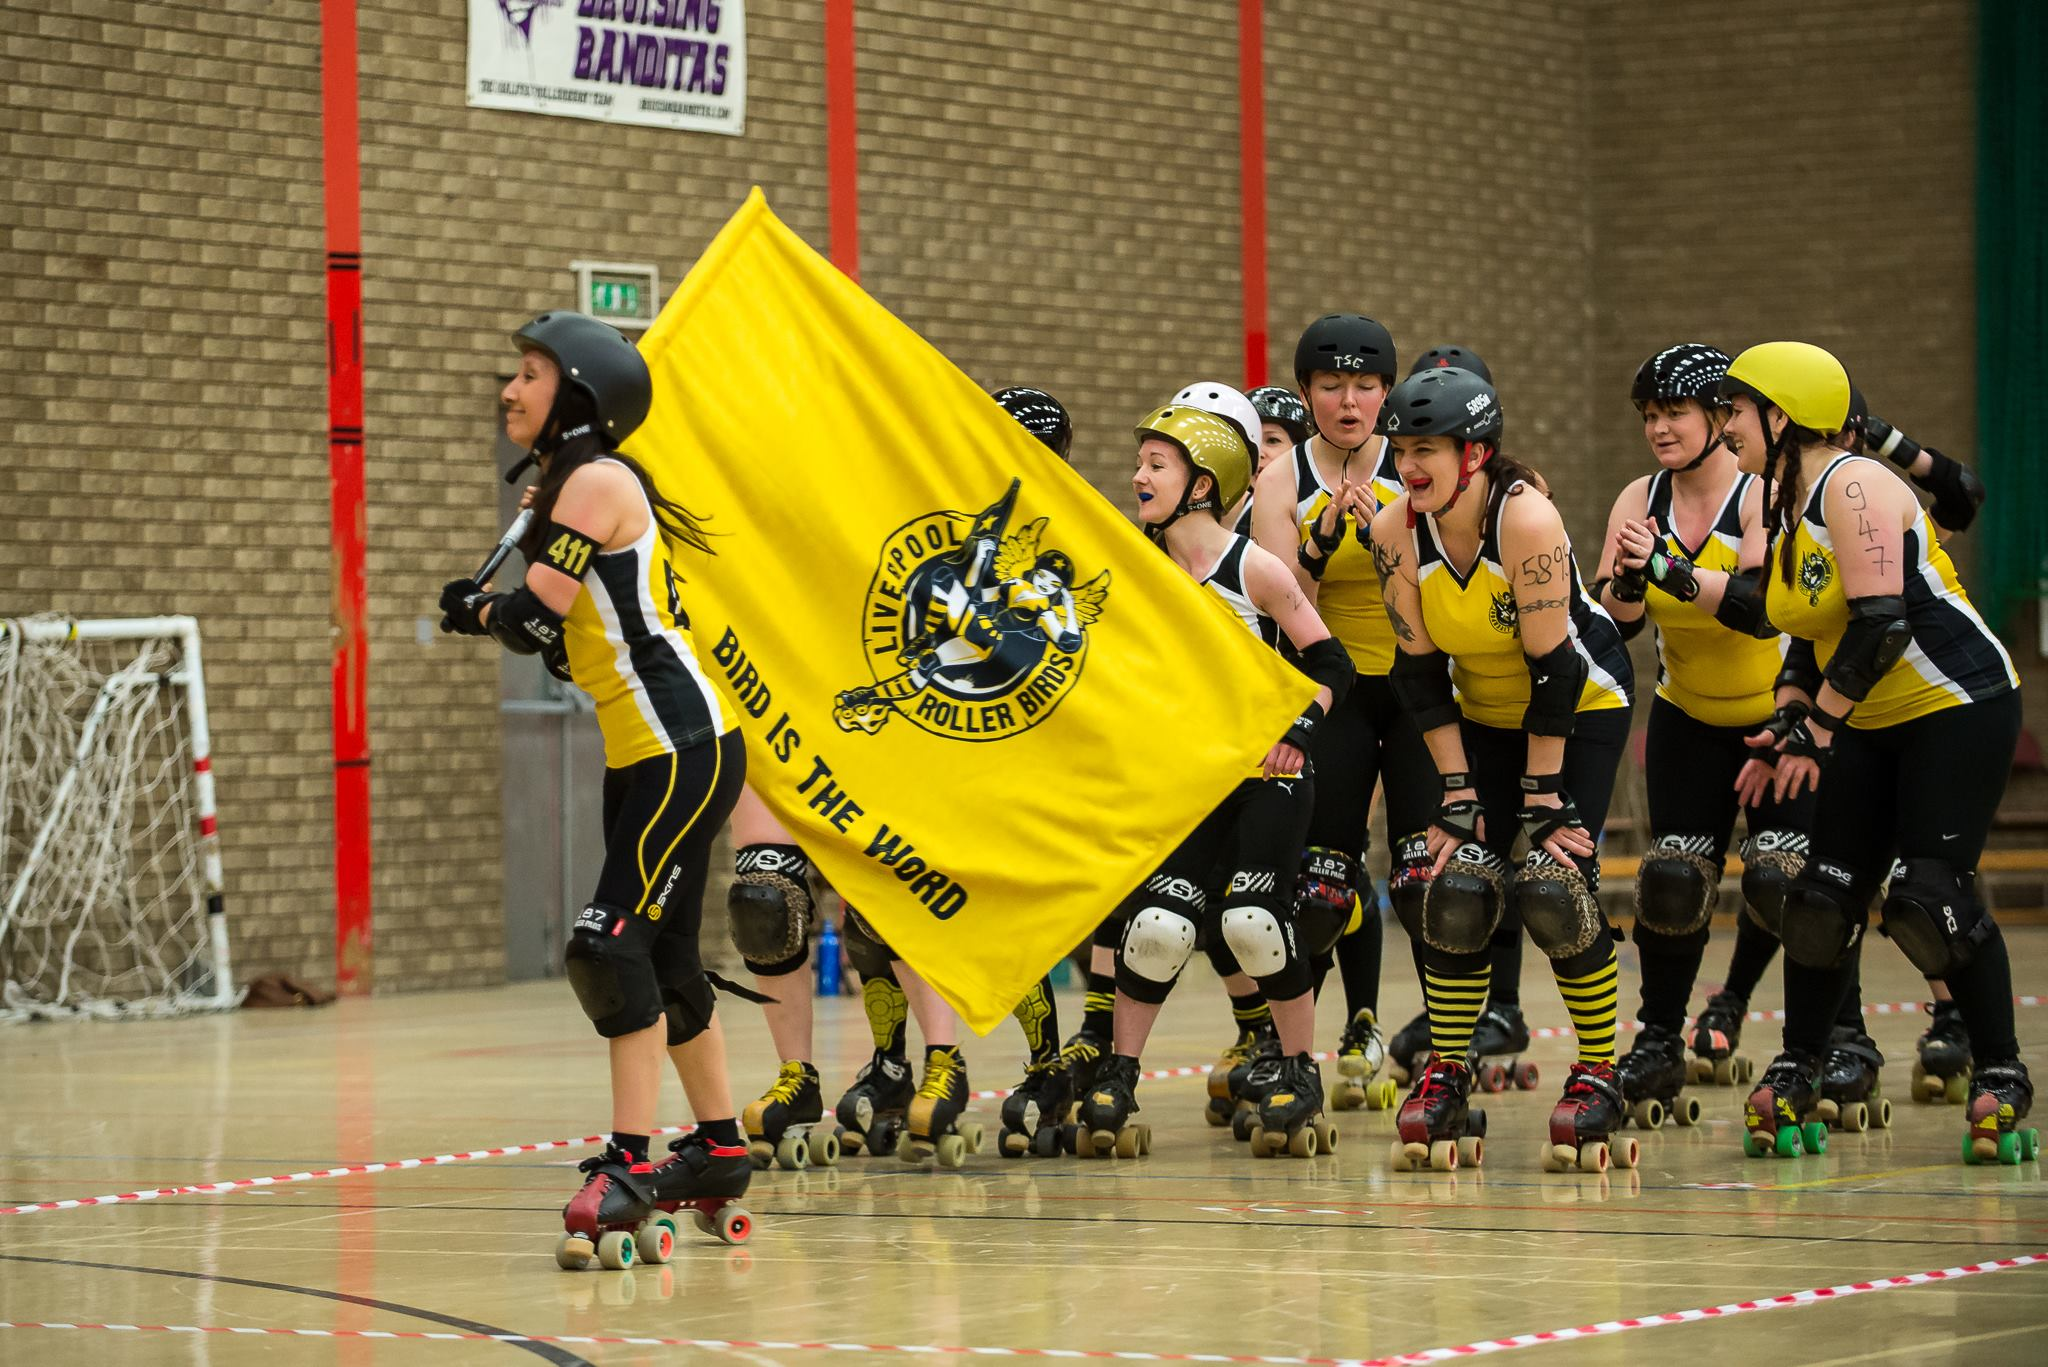 Liverpool roller birds sisters of mersey photo courtesy of taut clothing